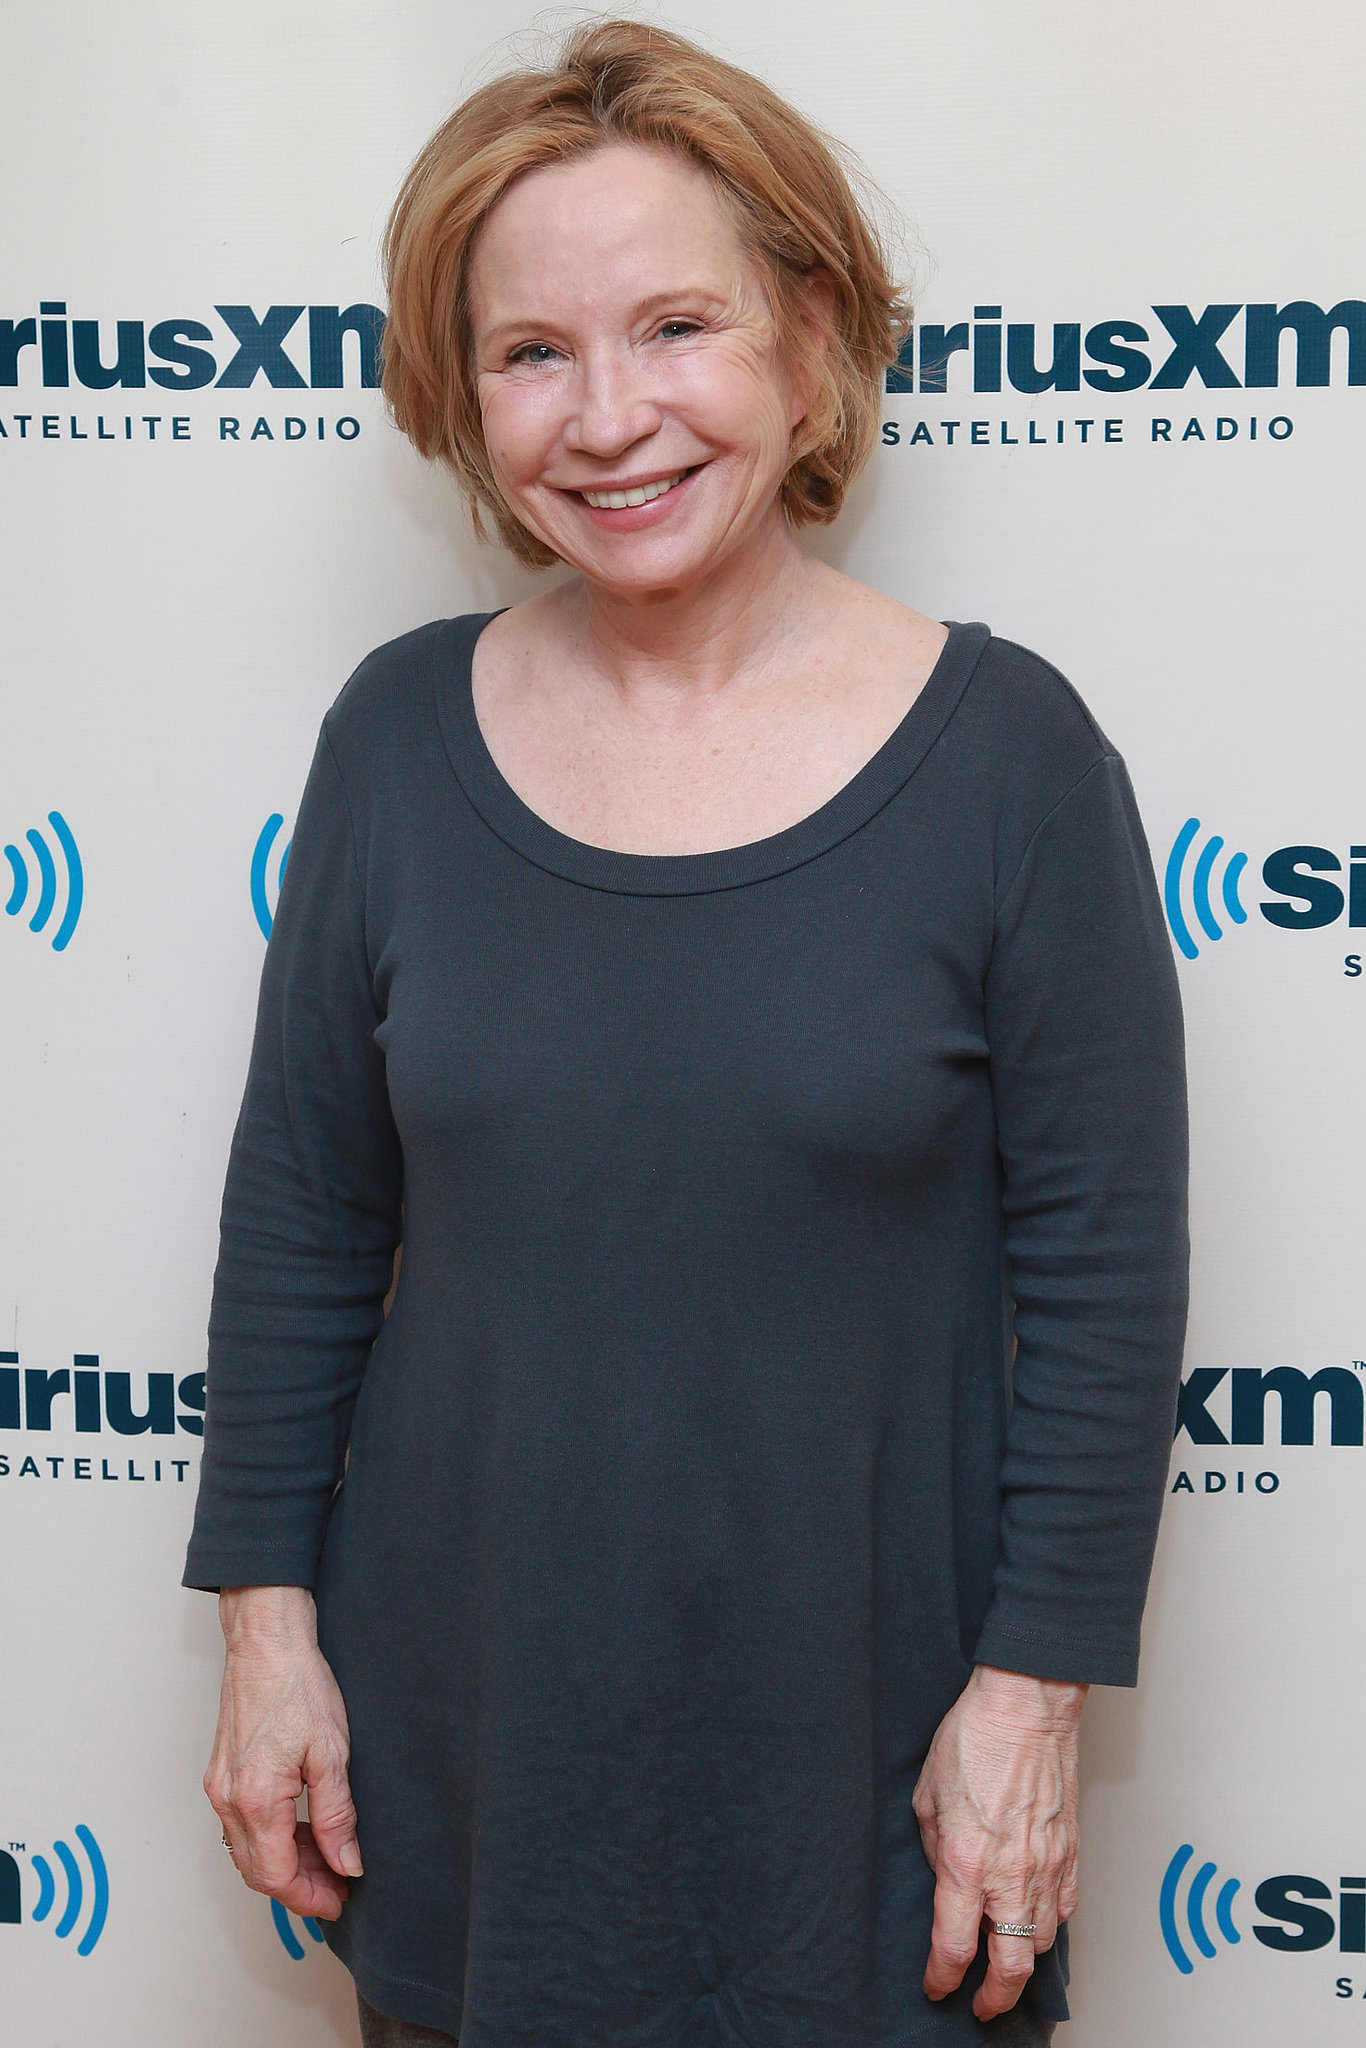 Debra Jo Rupp is still alive